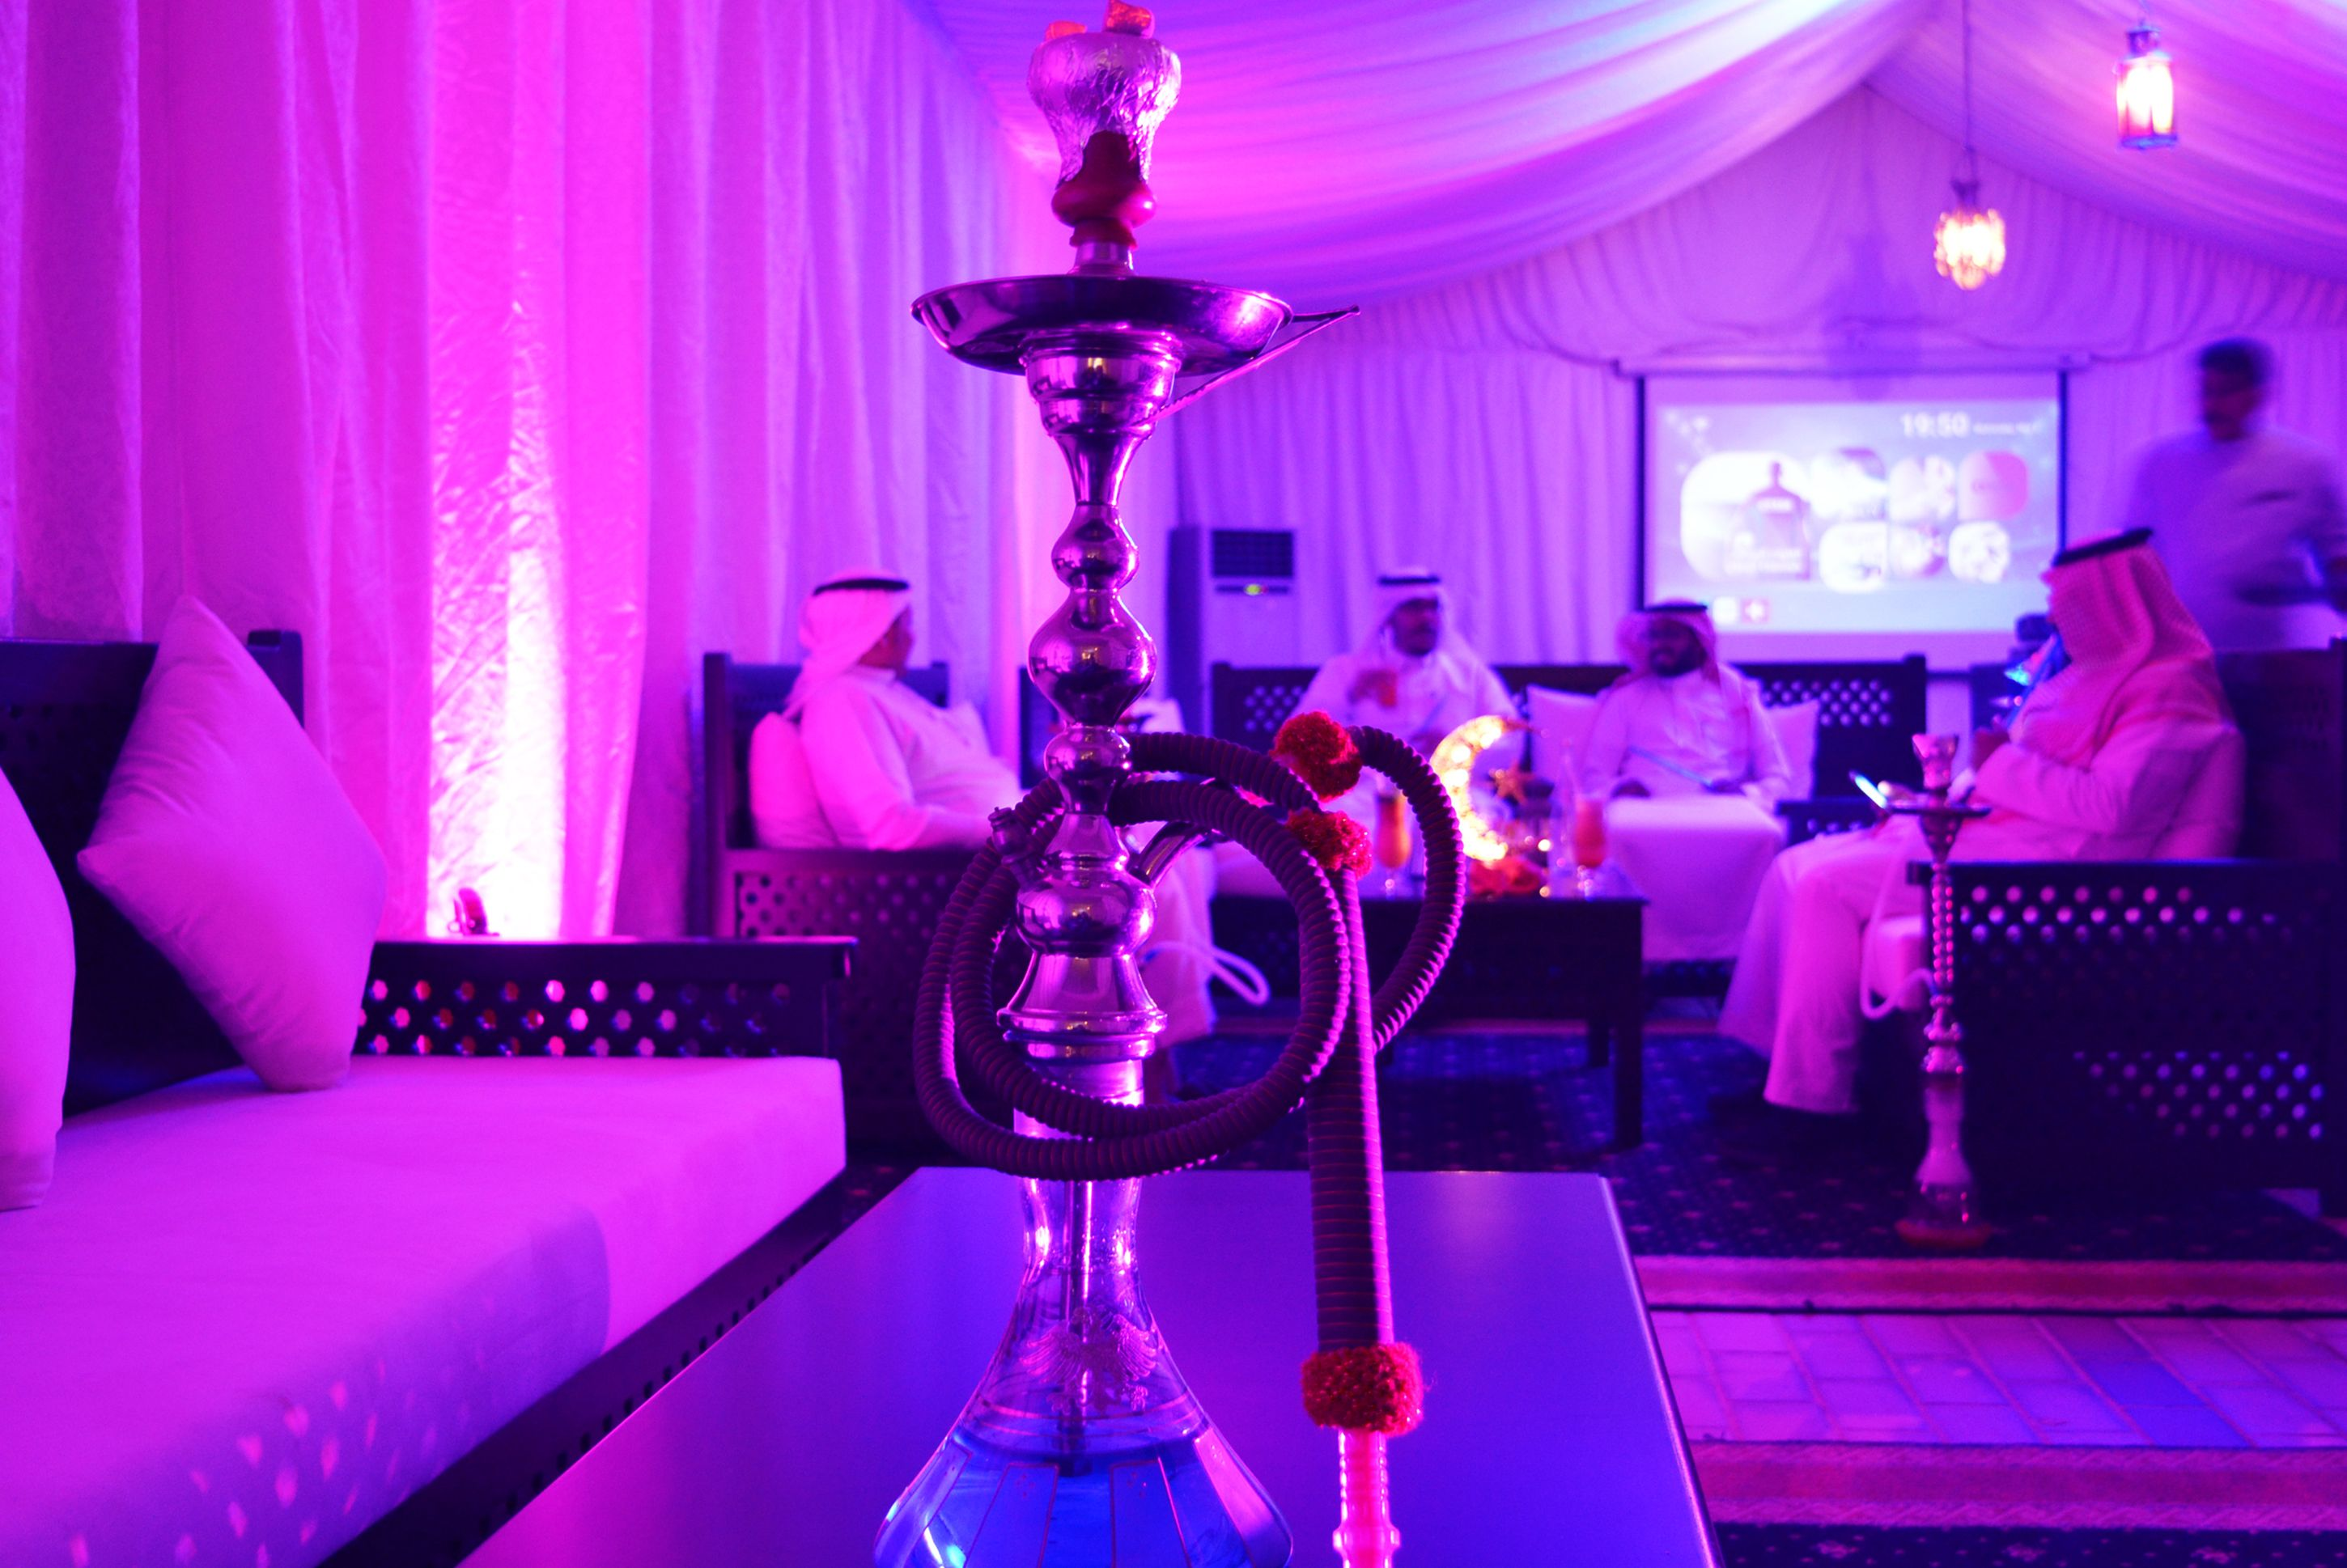 Enjoy Your Sisha Coffee Juices And Snacks At 360 Cafe Ramadan Tent Located On The Swimming Pool Area Open Daily Fro Fruit Cocktails Jeddah Intercontinental